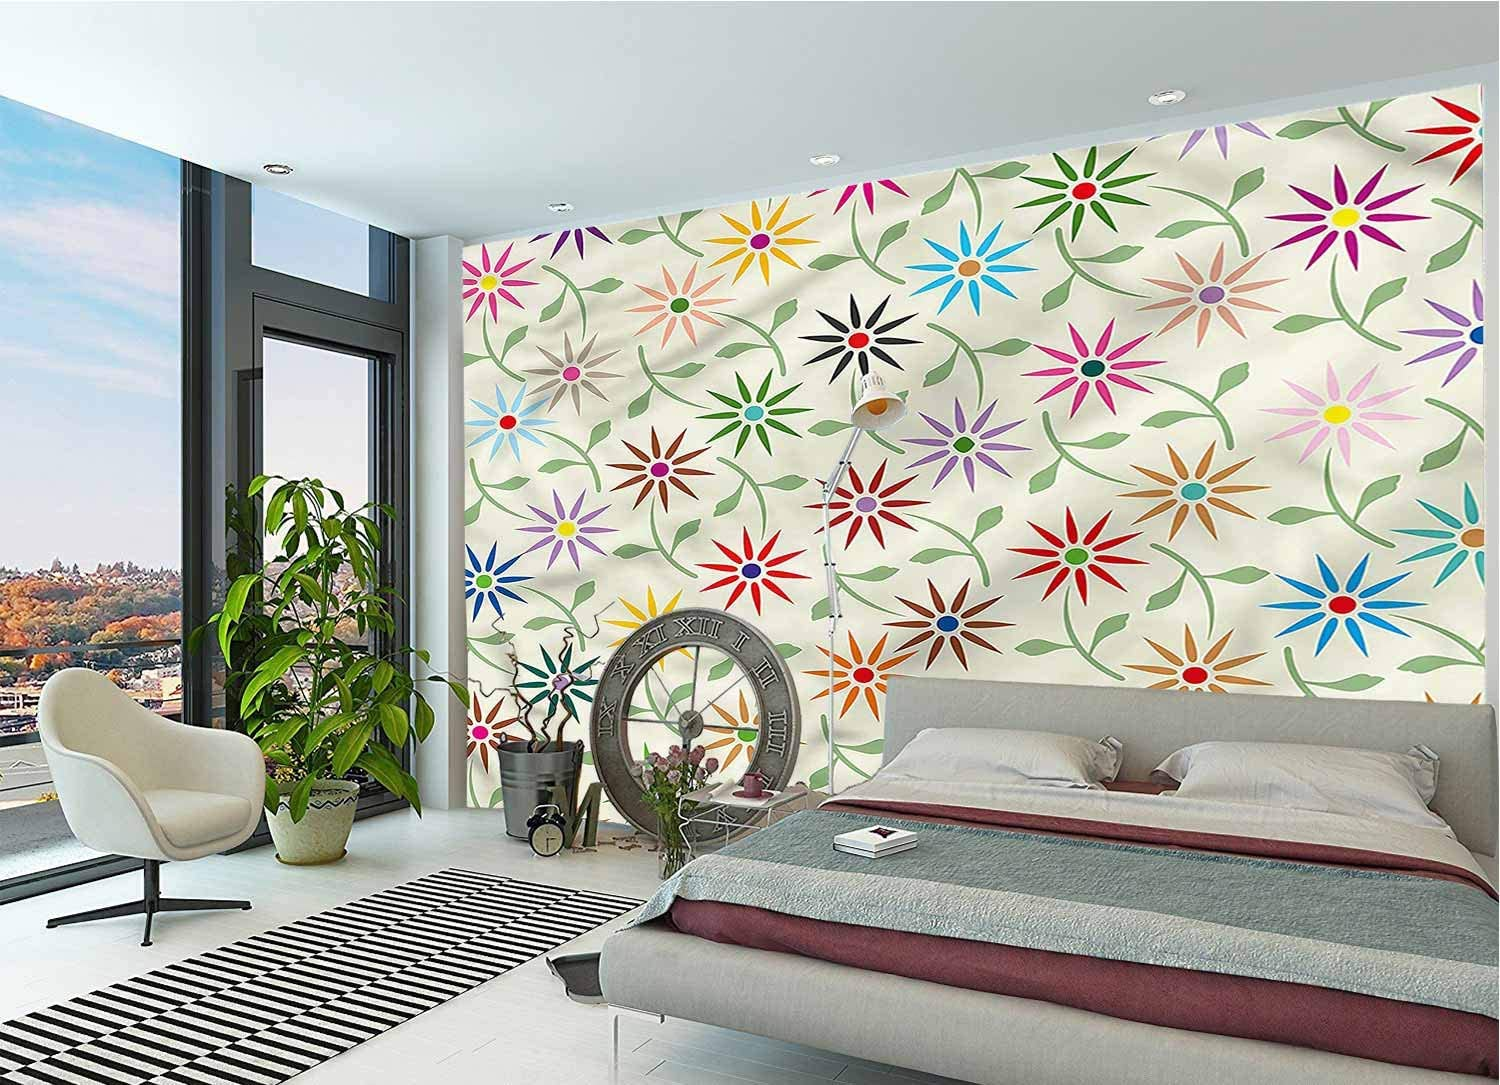 LCGGDB Floral Large Wall Mural,Colorful Graphic Garden Self-Adhesive Large Wallpaper for Office Kids Bedroom Nursery Family Decor-118x83 Inch